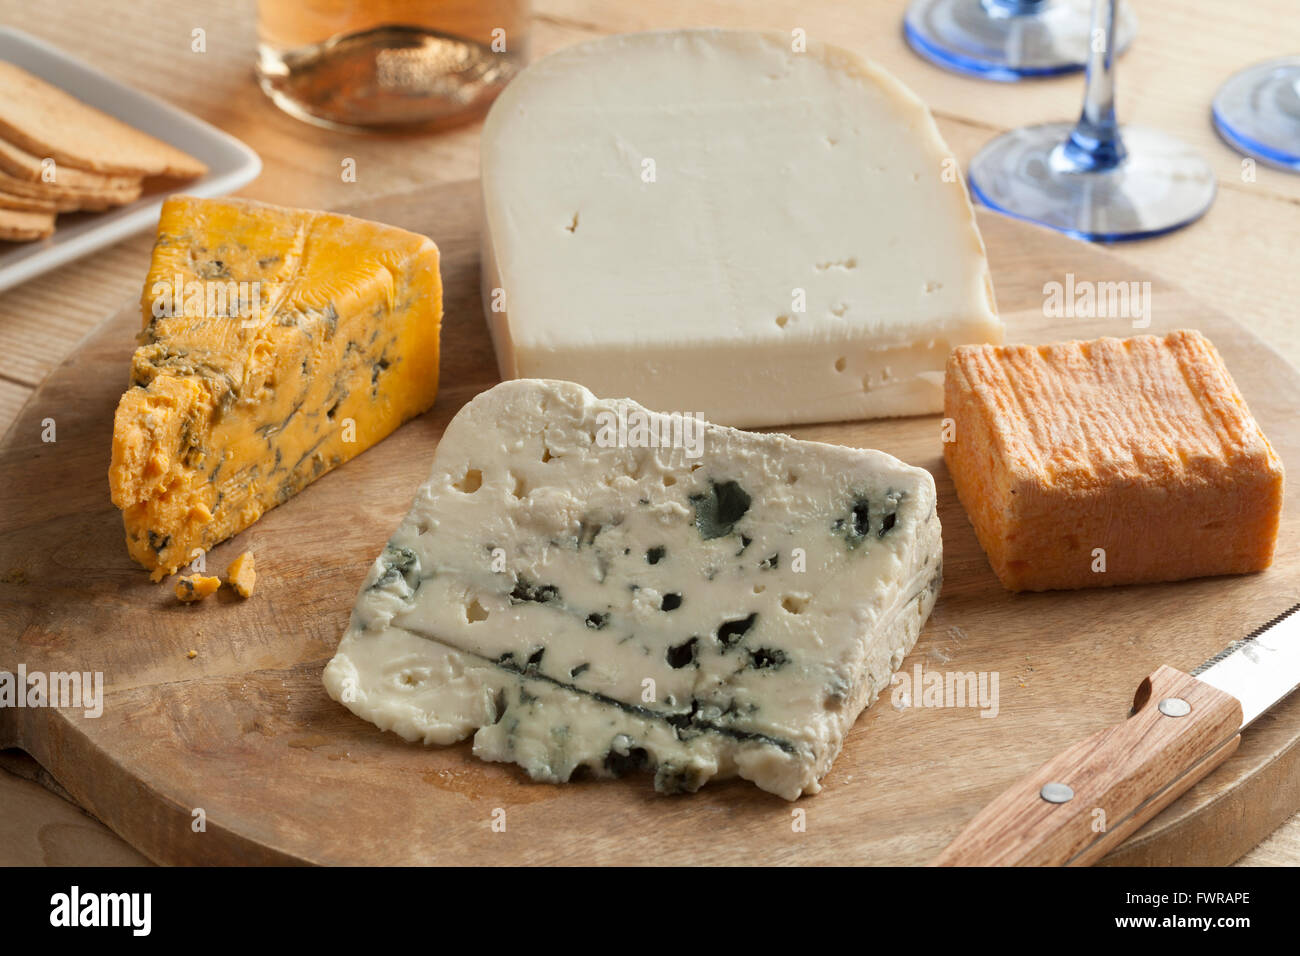 Variety of cheese on a wooden board for dessert - Stock Image